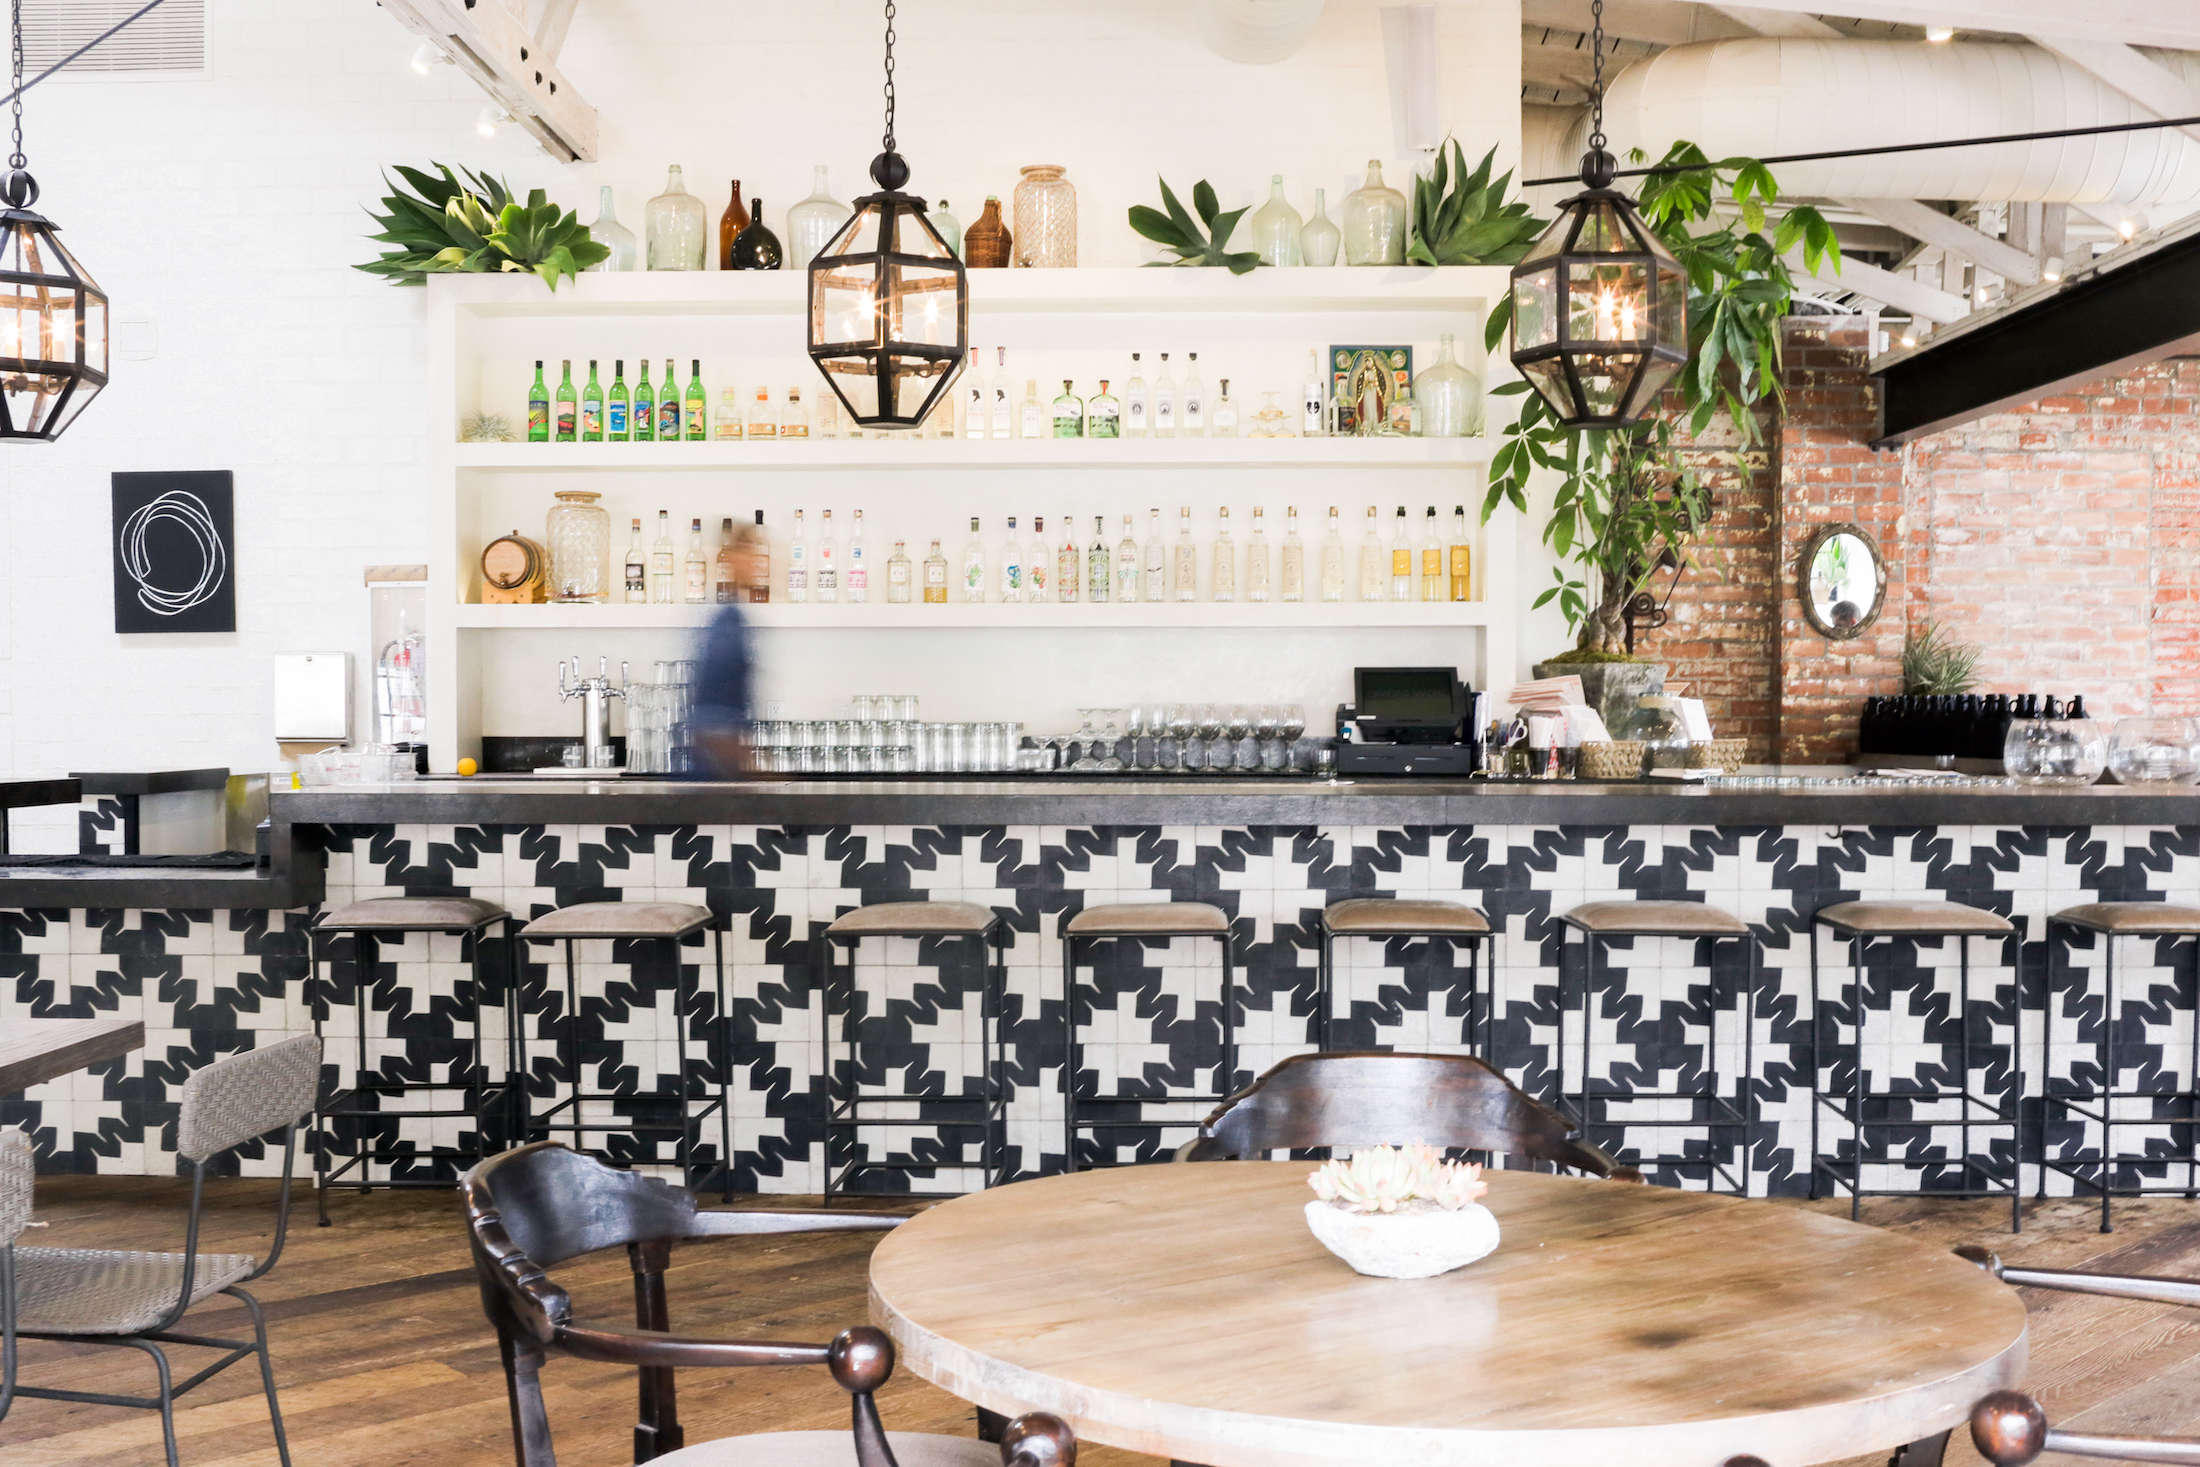 gracias-madre-restaurant-west-hollywood-la-wide-bar-black-white-pattern-tile